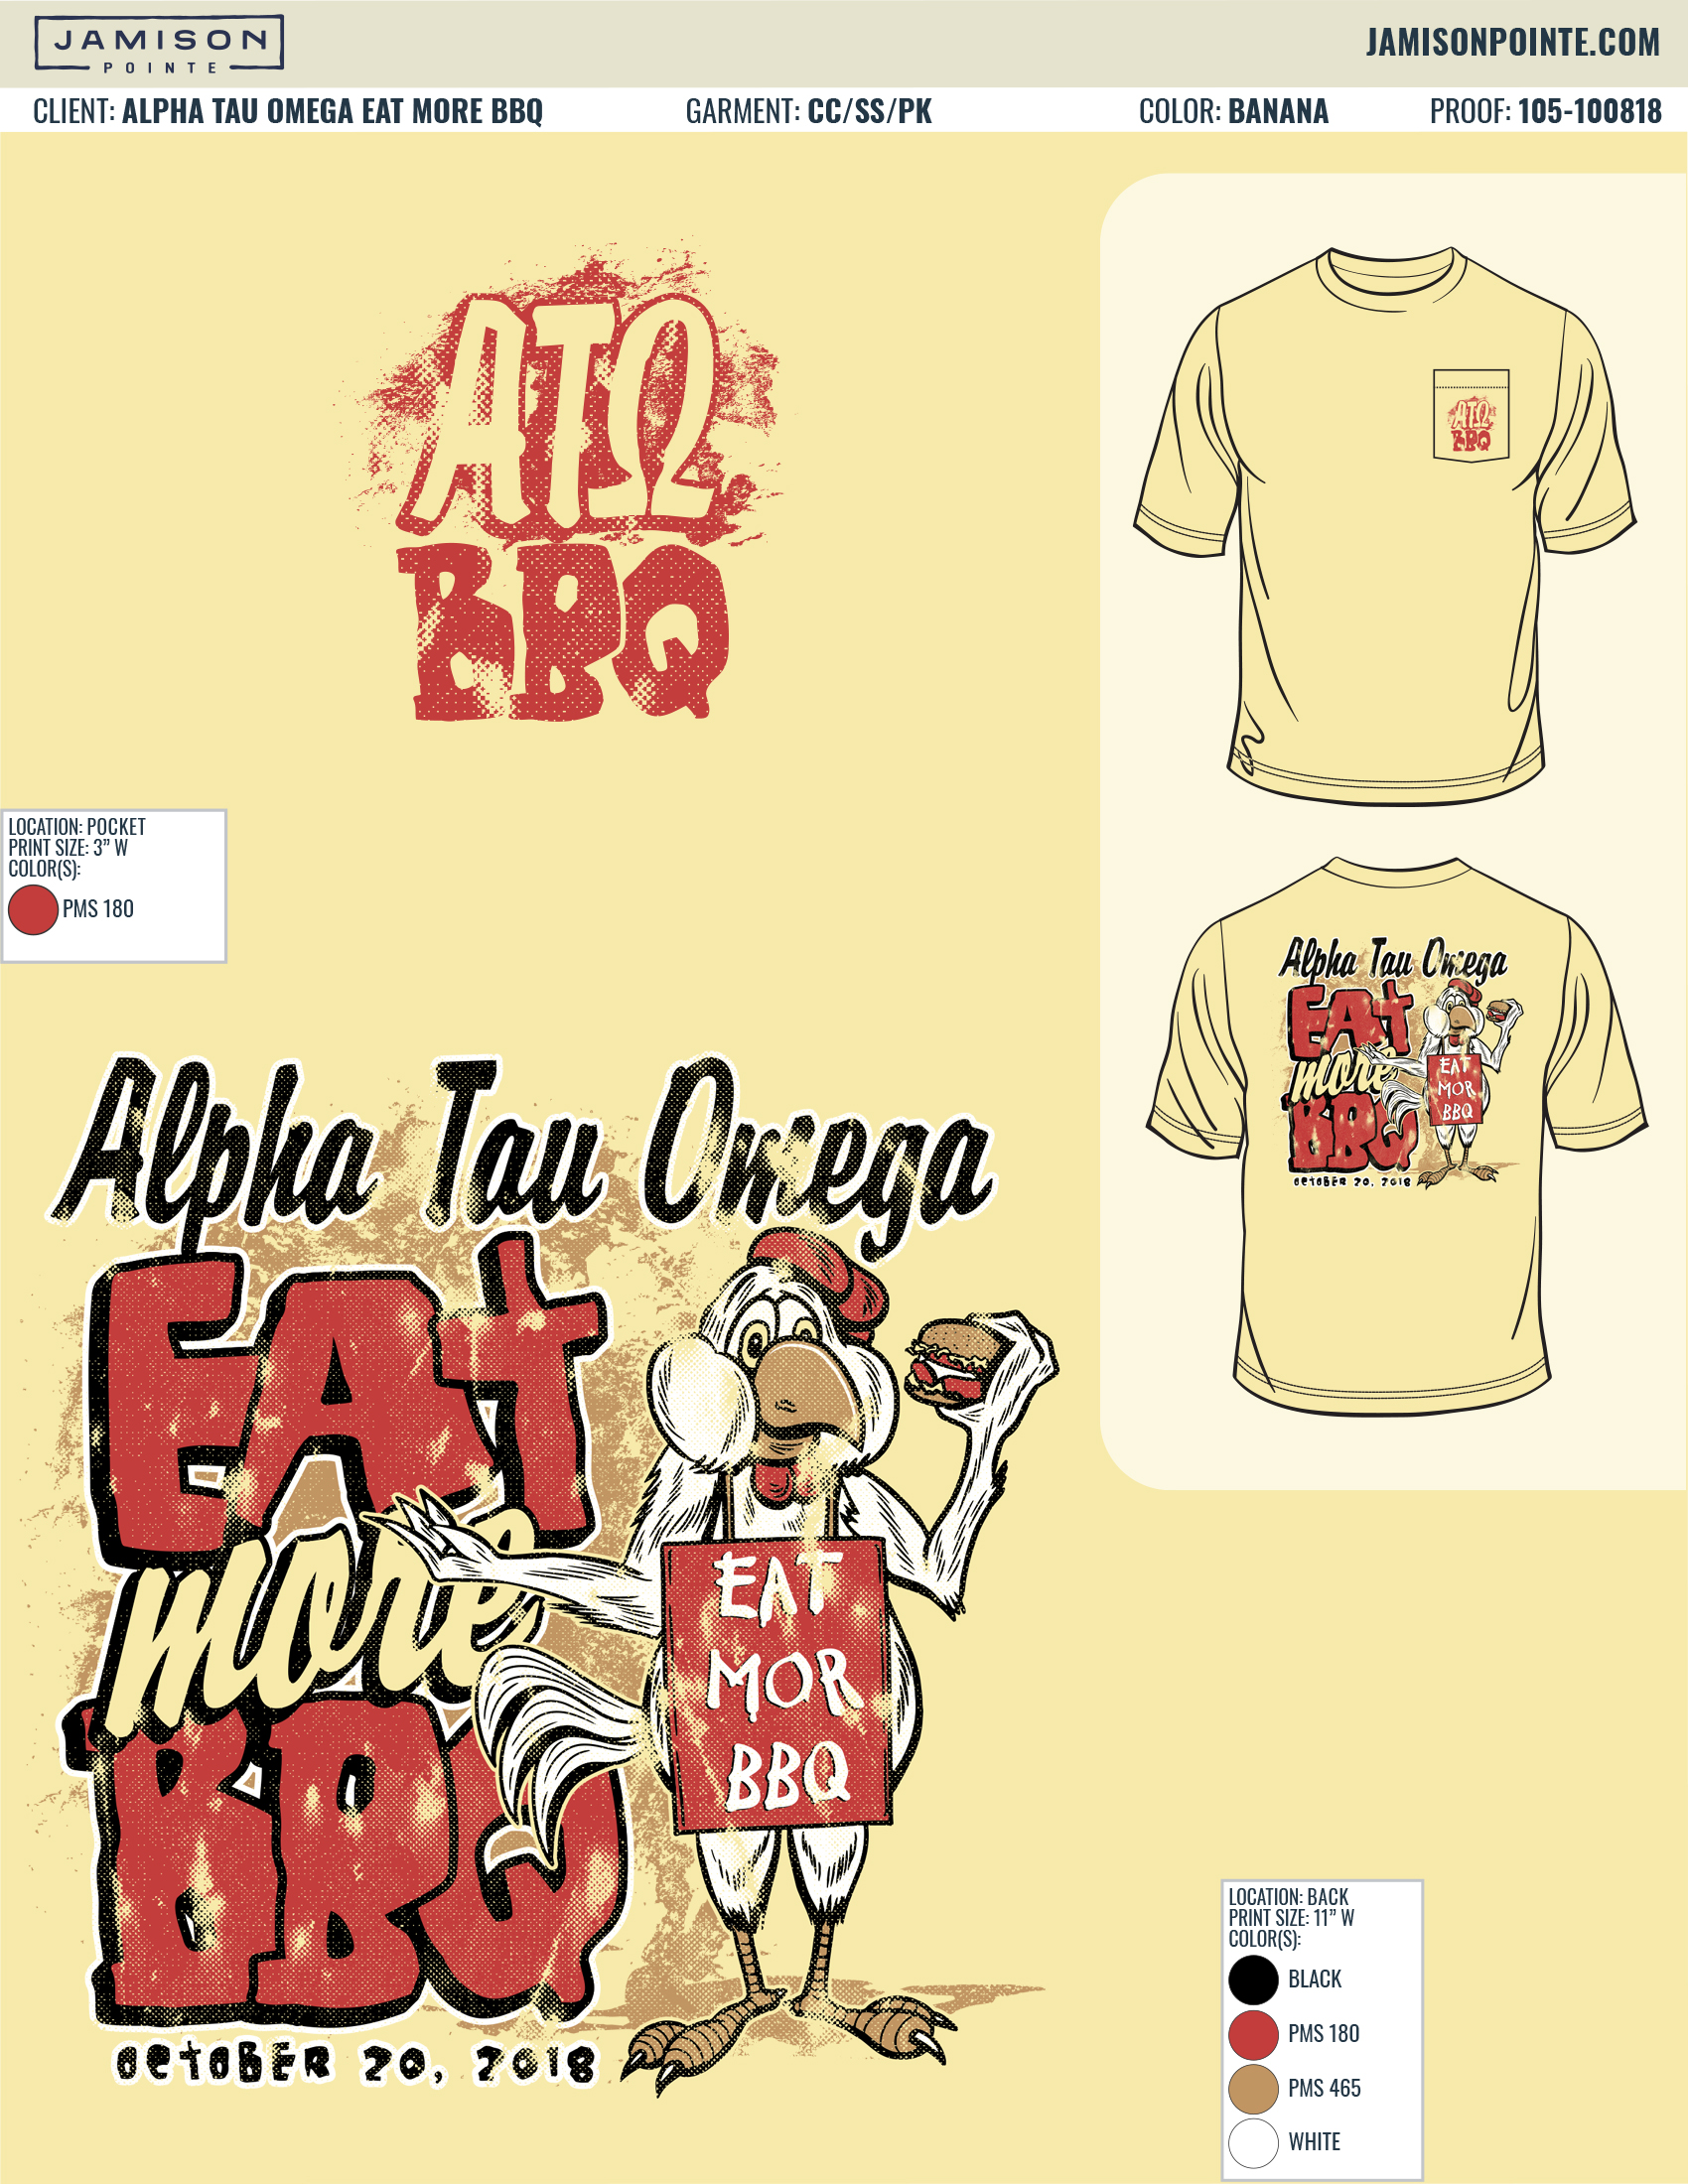 105-100818 Alpha Tau Omega Eat More BBQ.jpg